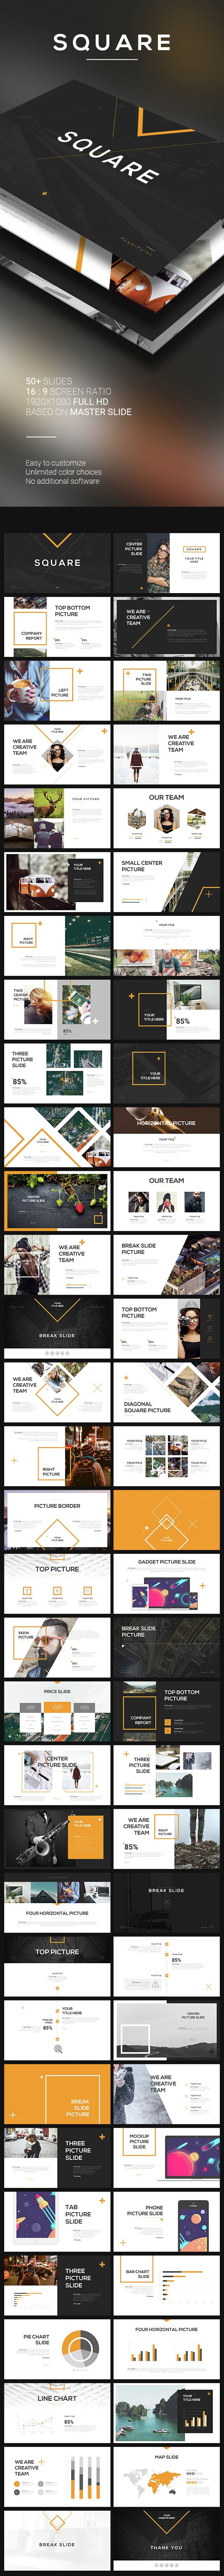 Square PowerPoint Template. Download here…